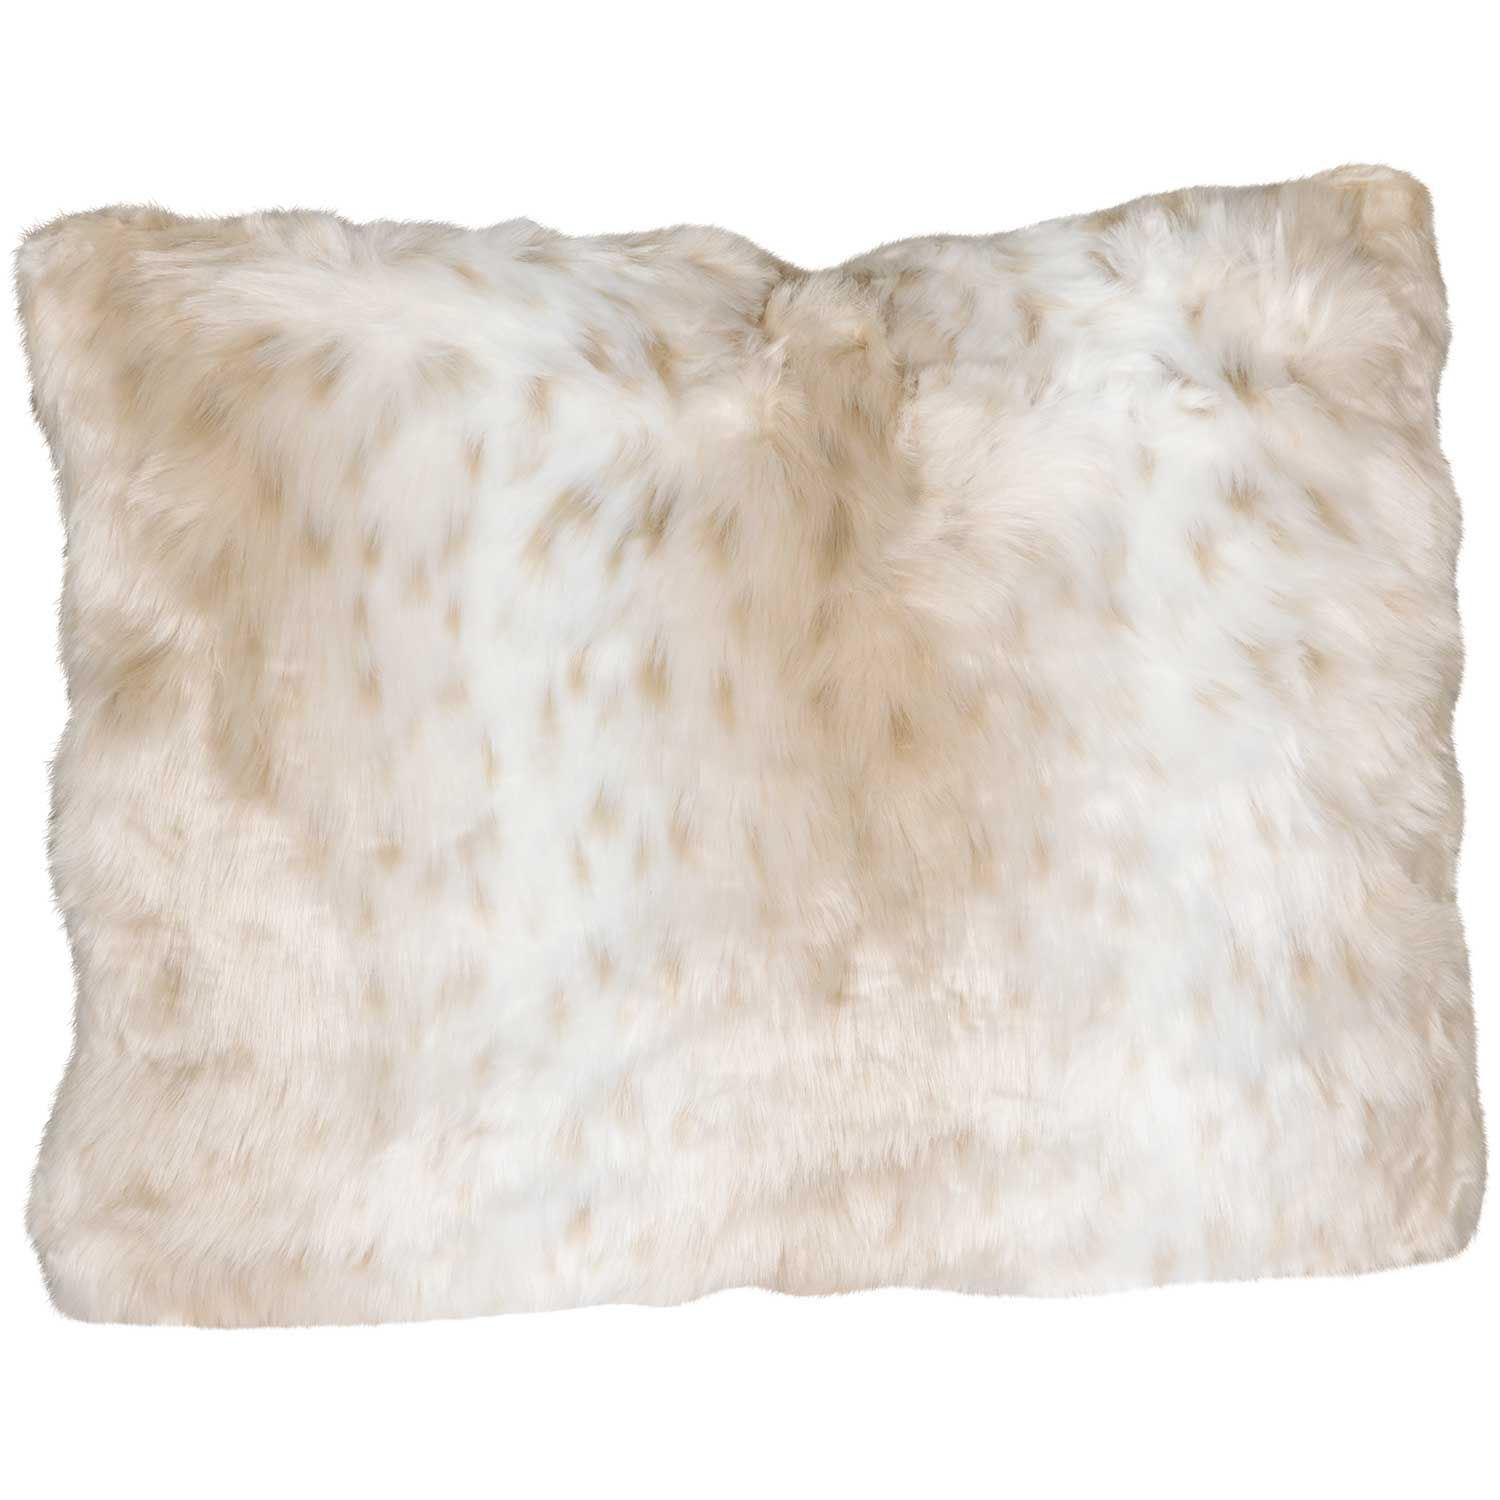 15x20 Aslan Faux Fur Decorative Pillow